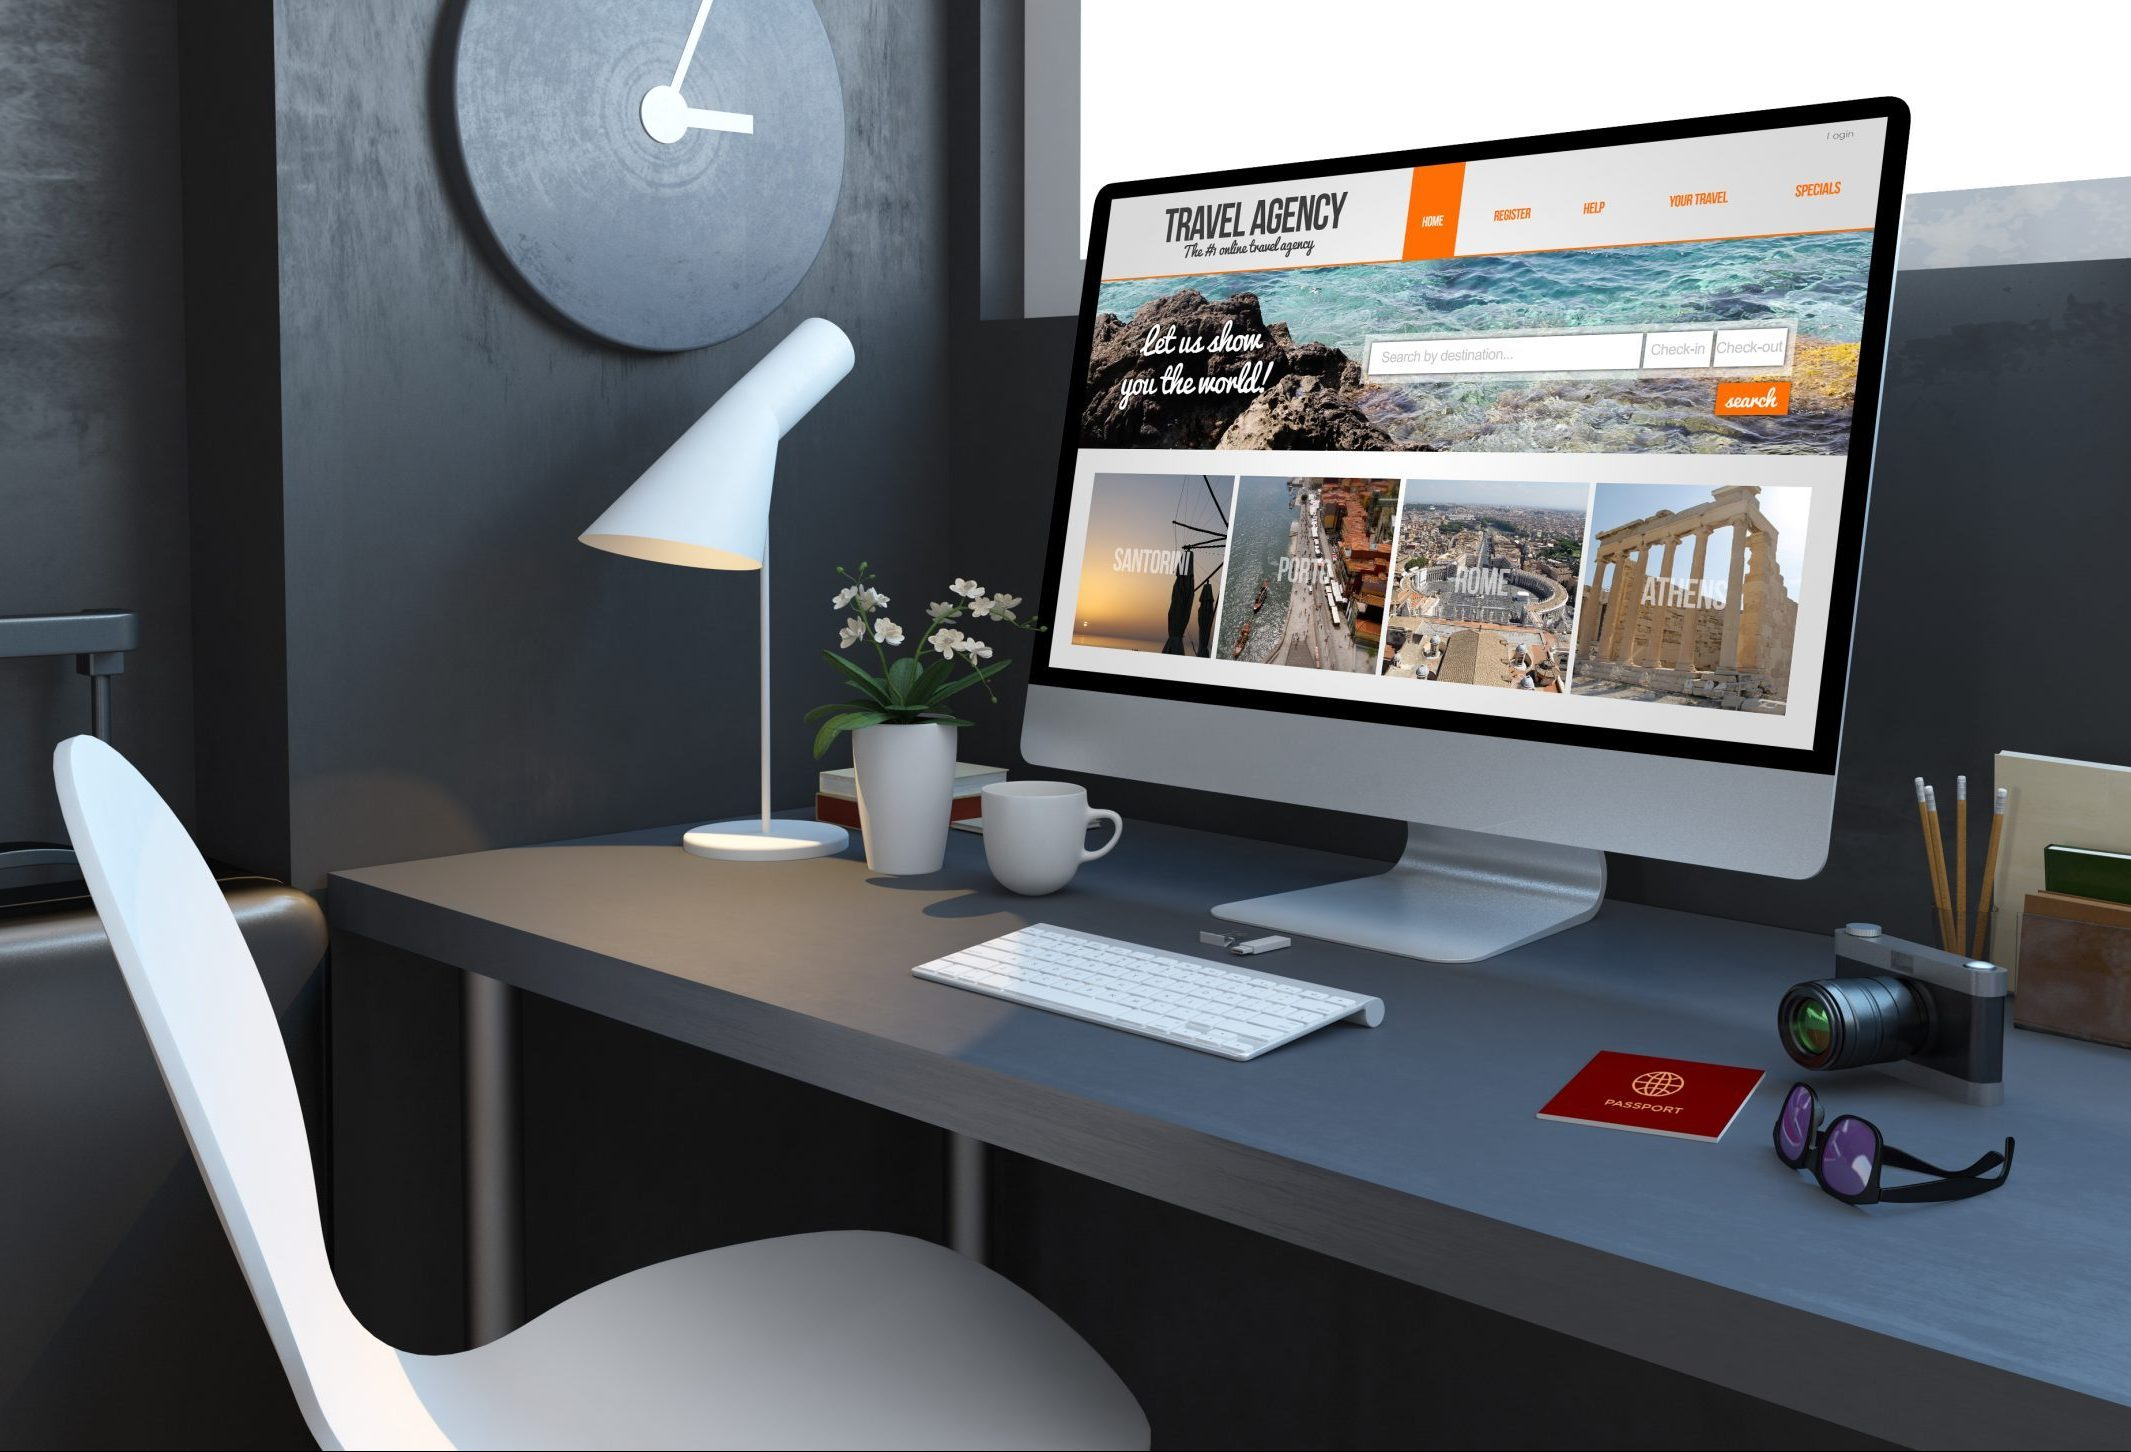 navy desktop with travel accesories agency website computer 3d rendering mockup scaled e1631902333835